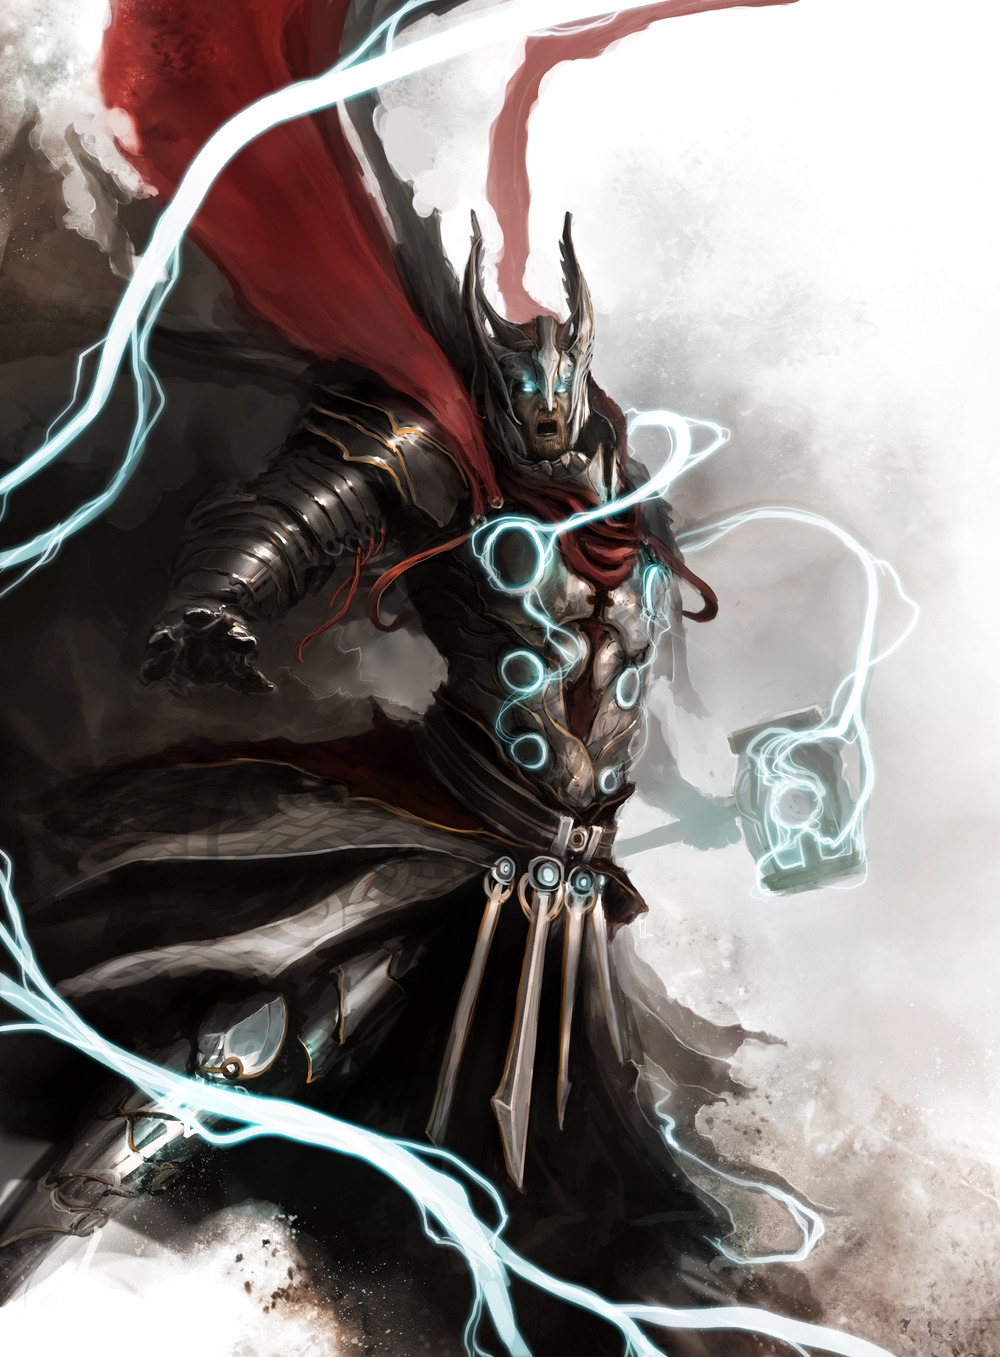 the_avengers___thor_by_thedurrrrian-d55bw1h.jpg